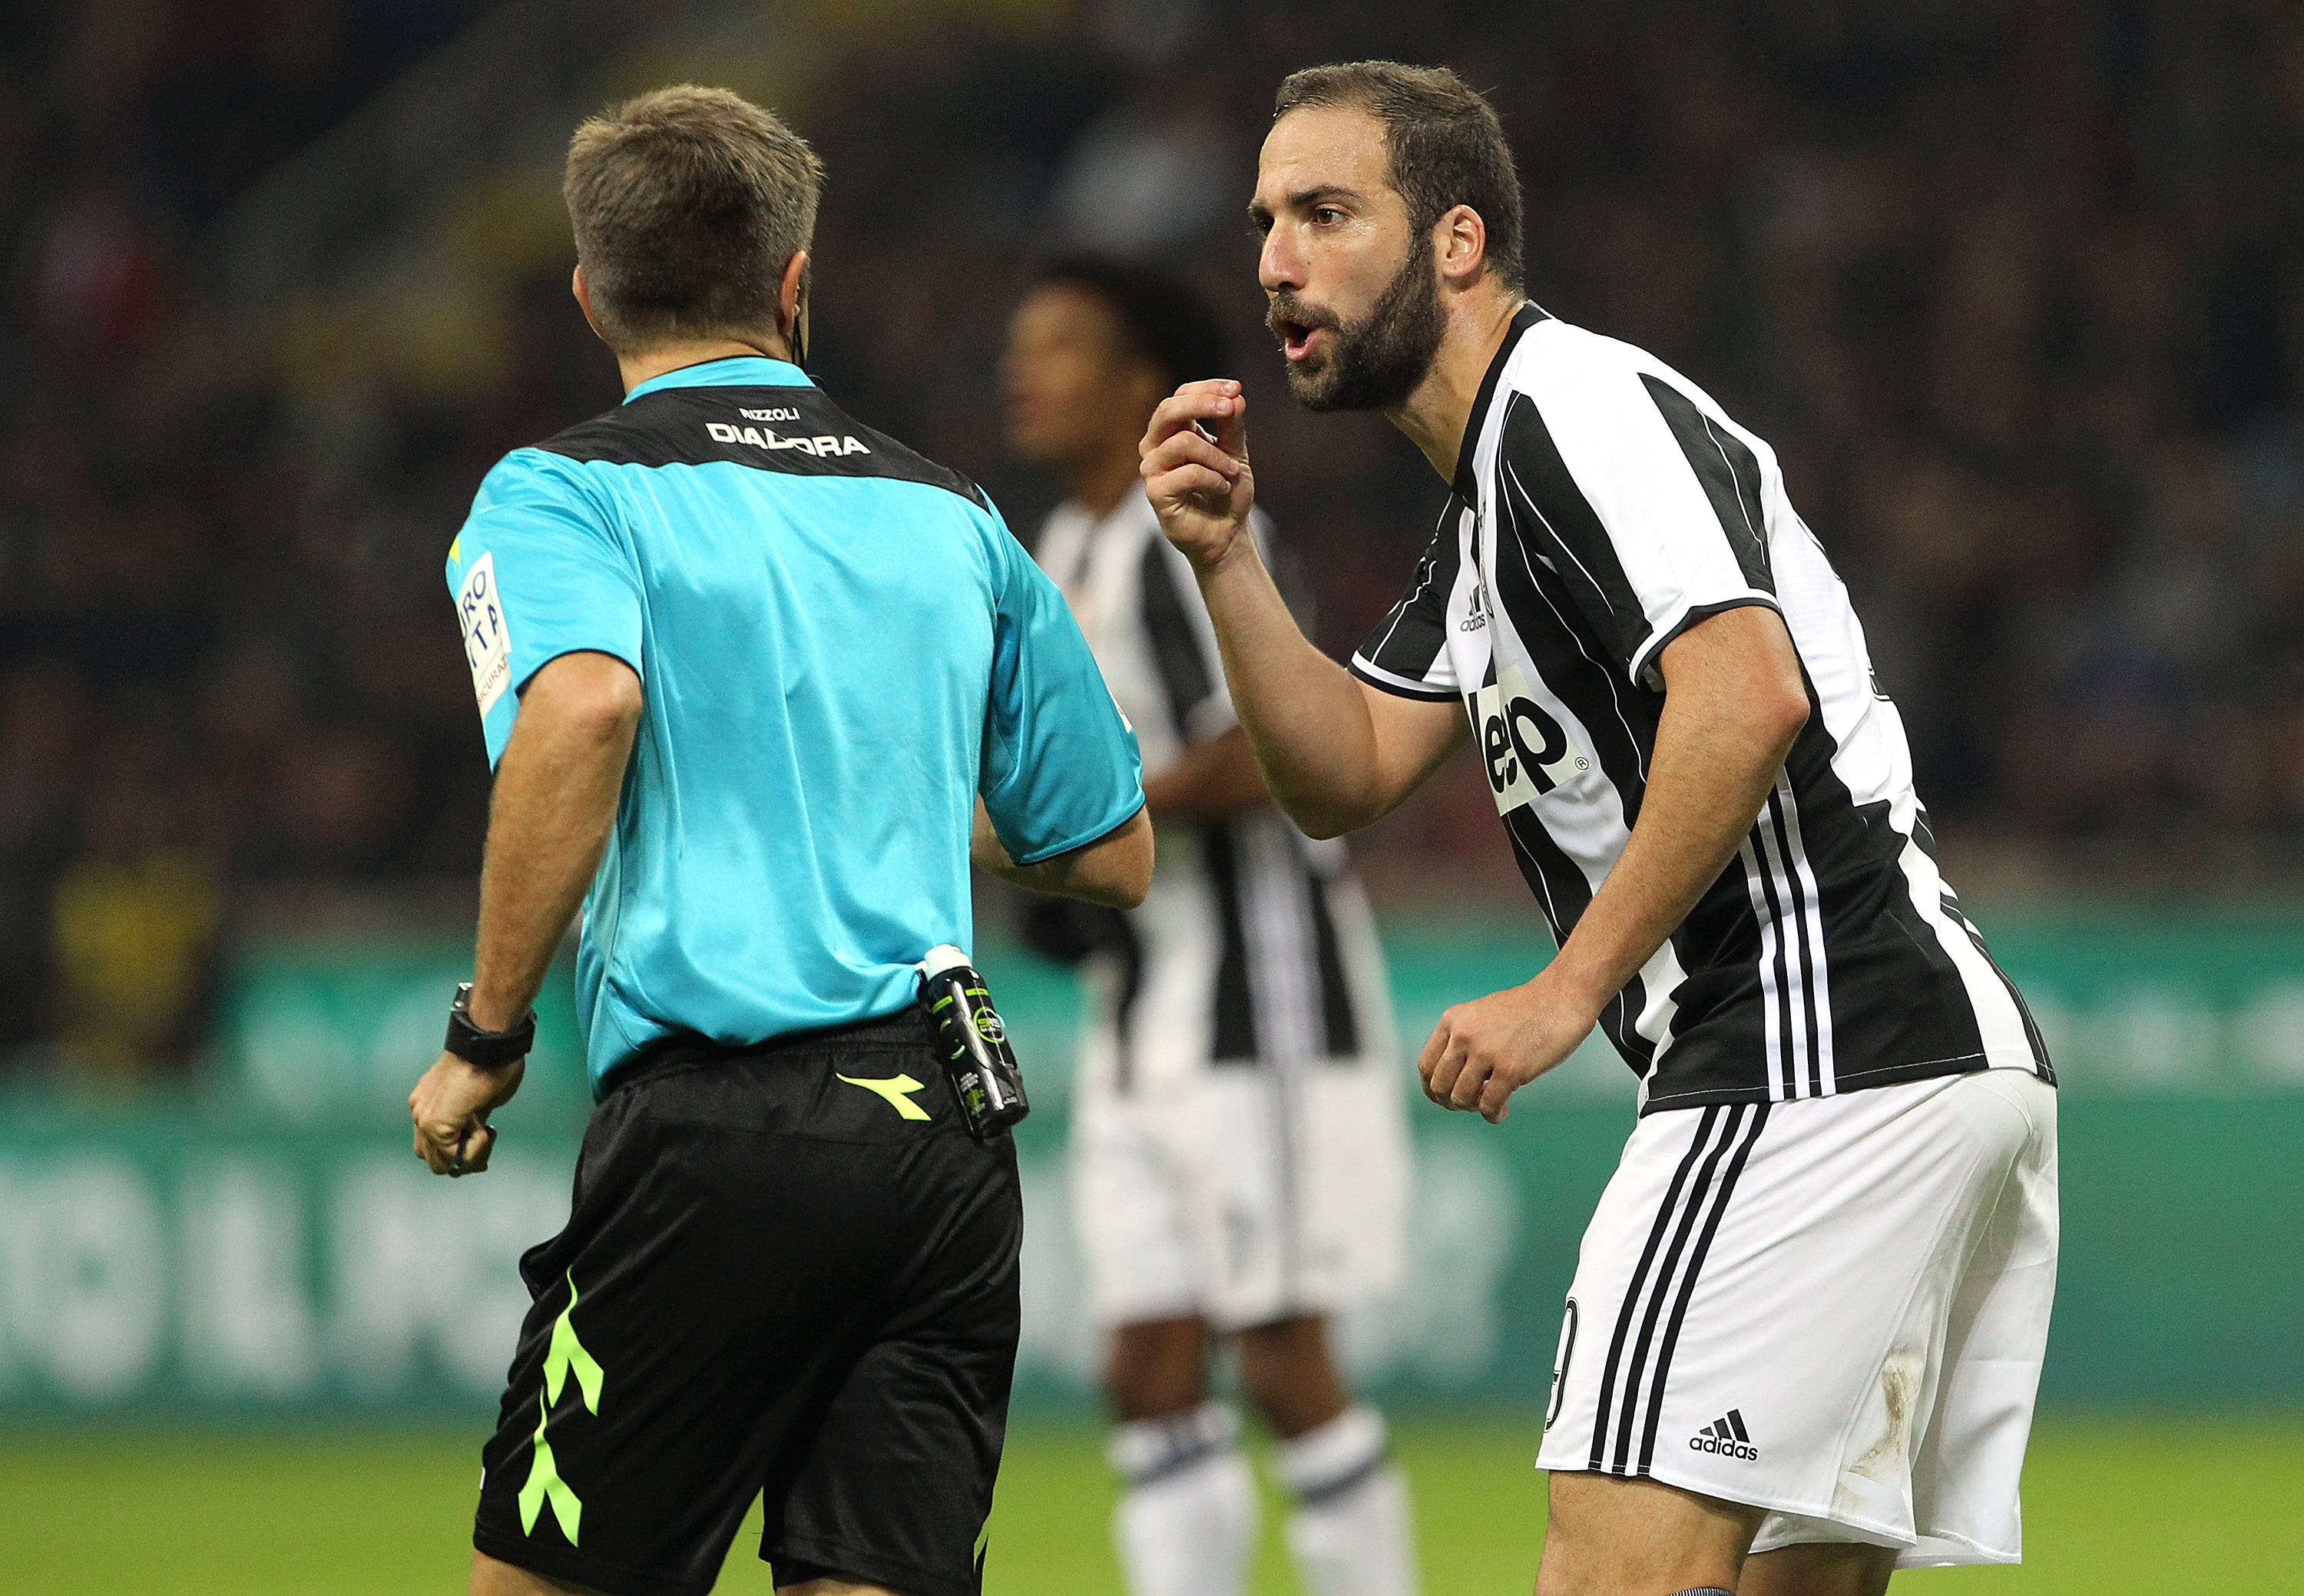 MILAN, ITALY - OCTOBER 22: Gonzalo Higuain (R) of Juventus FC disputes with Referee Nicola Rizzoli (R) during the Serie A match between AC Milan and Juventus FC at Stadio Giuseppe Meazza on October 22, 2016 in Milan, Italy. (Photo by Marco Luzzani/Getty Images)